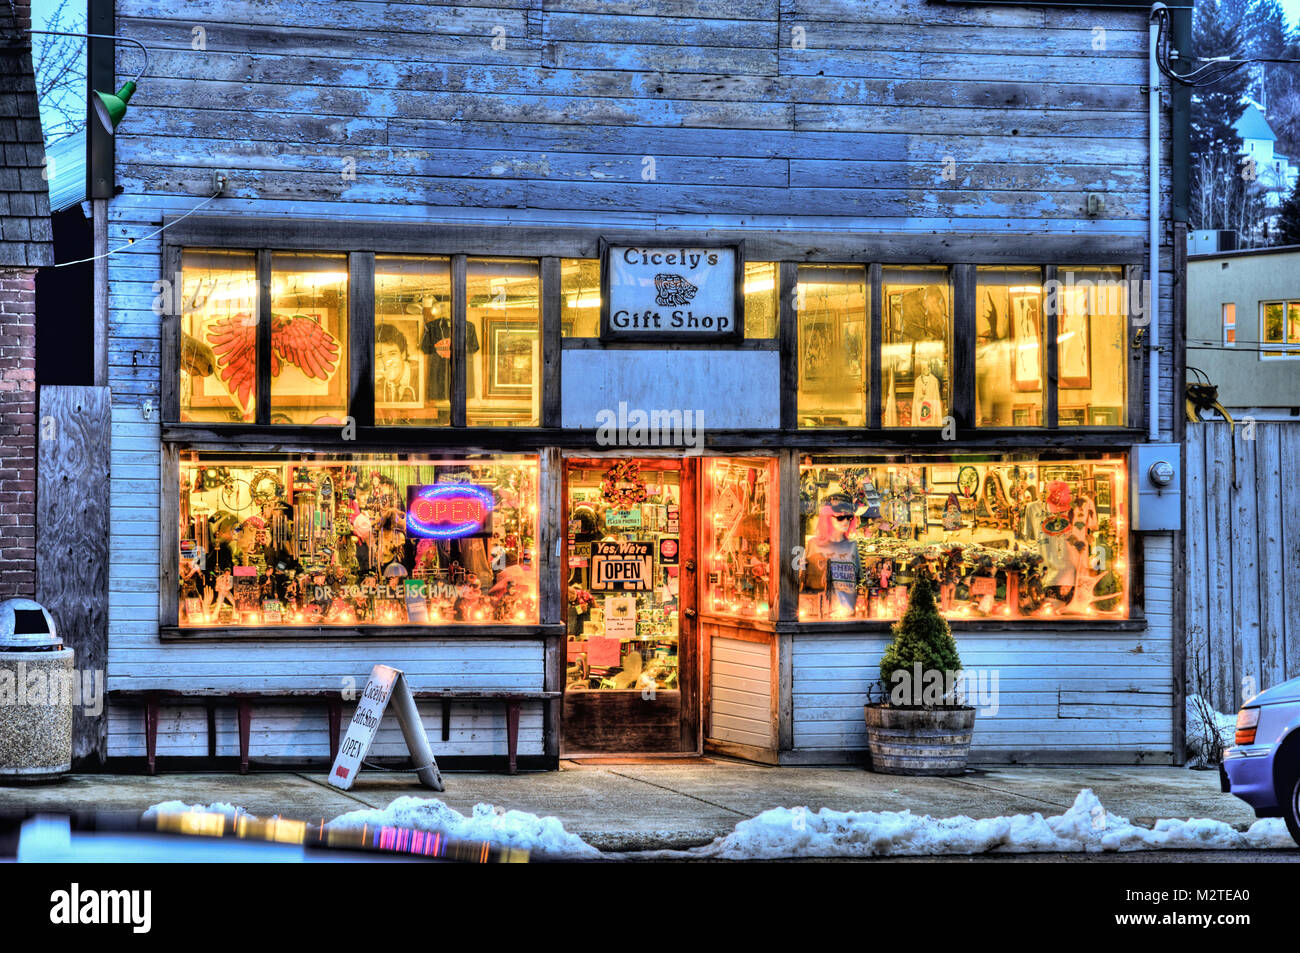 Gift shop in Roslyn: Joel Fleishman's office - Stock Image